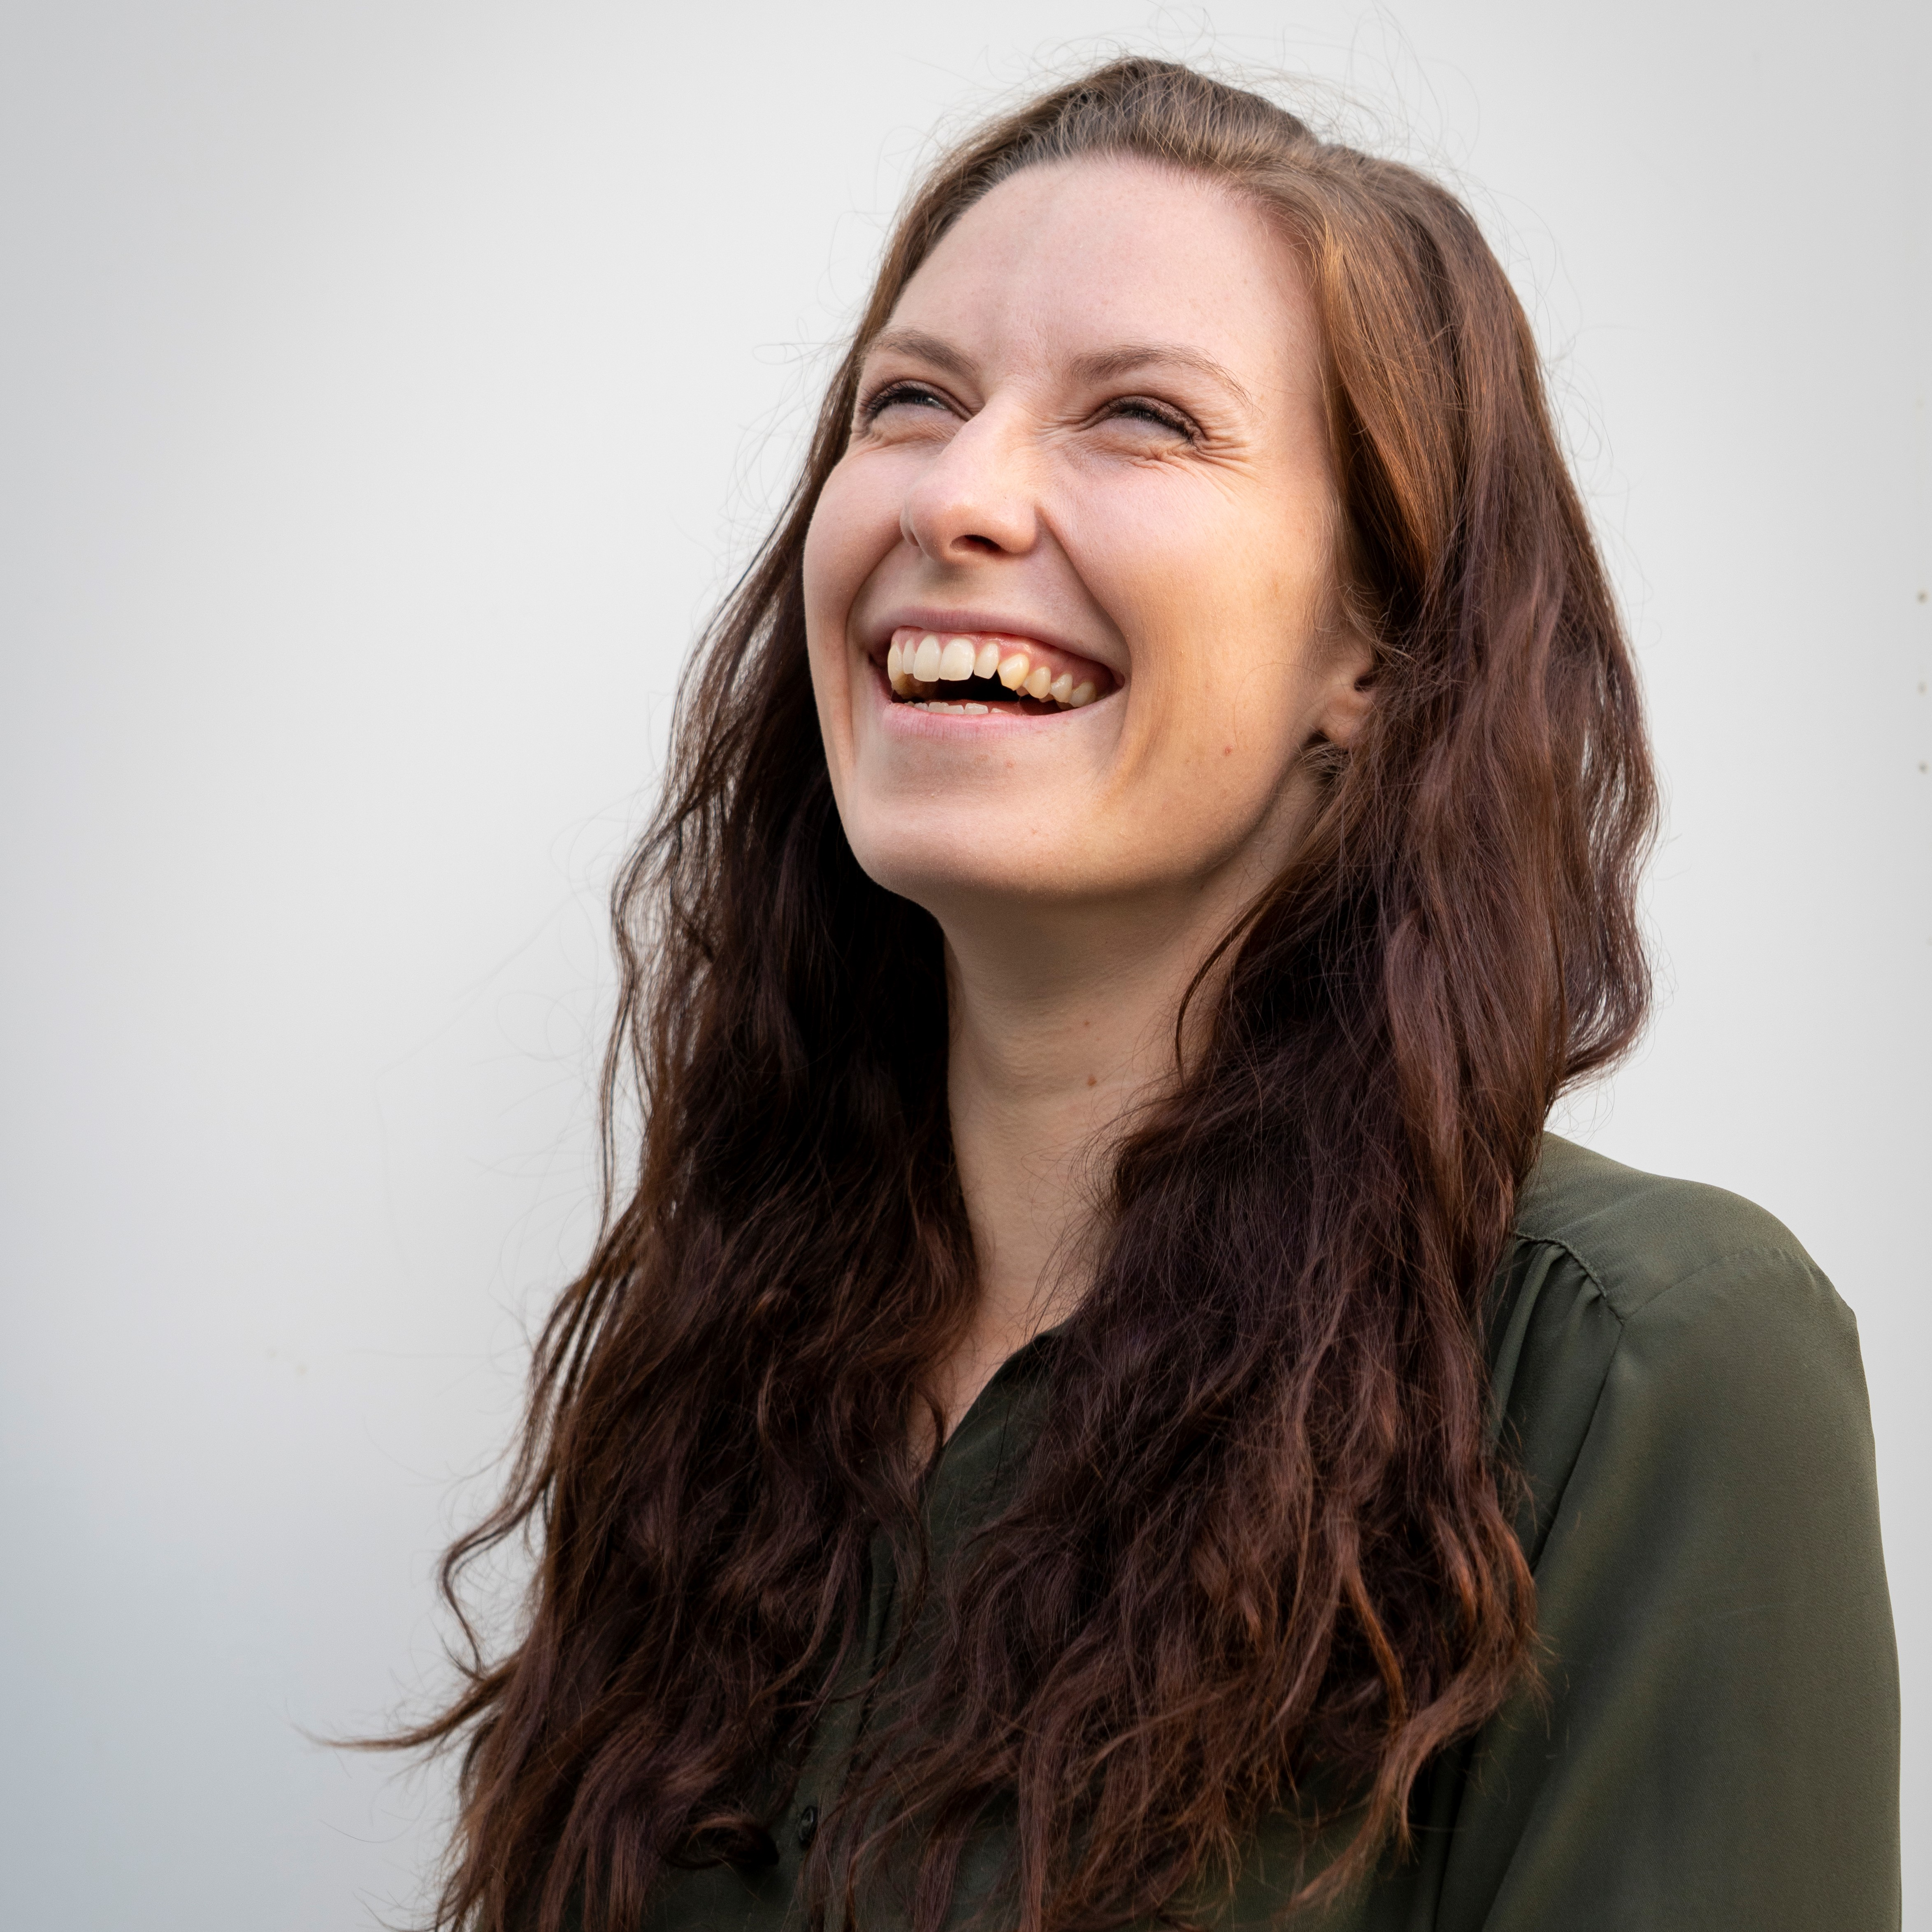 Andrea with long brown hair, looking upwards and laughing